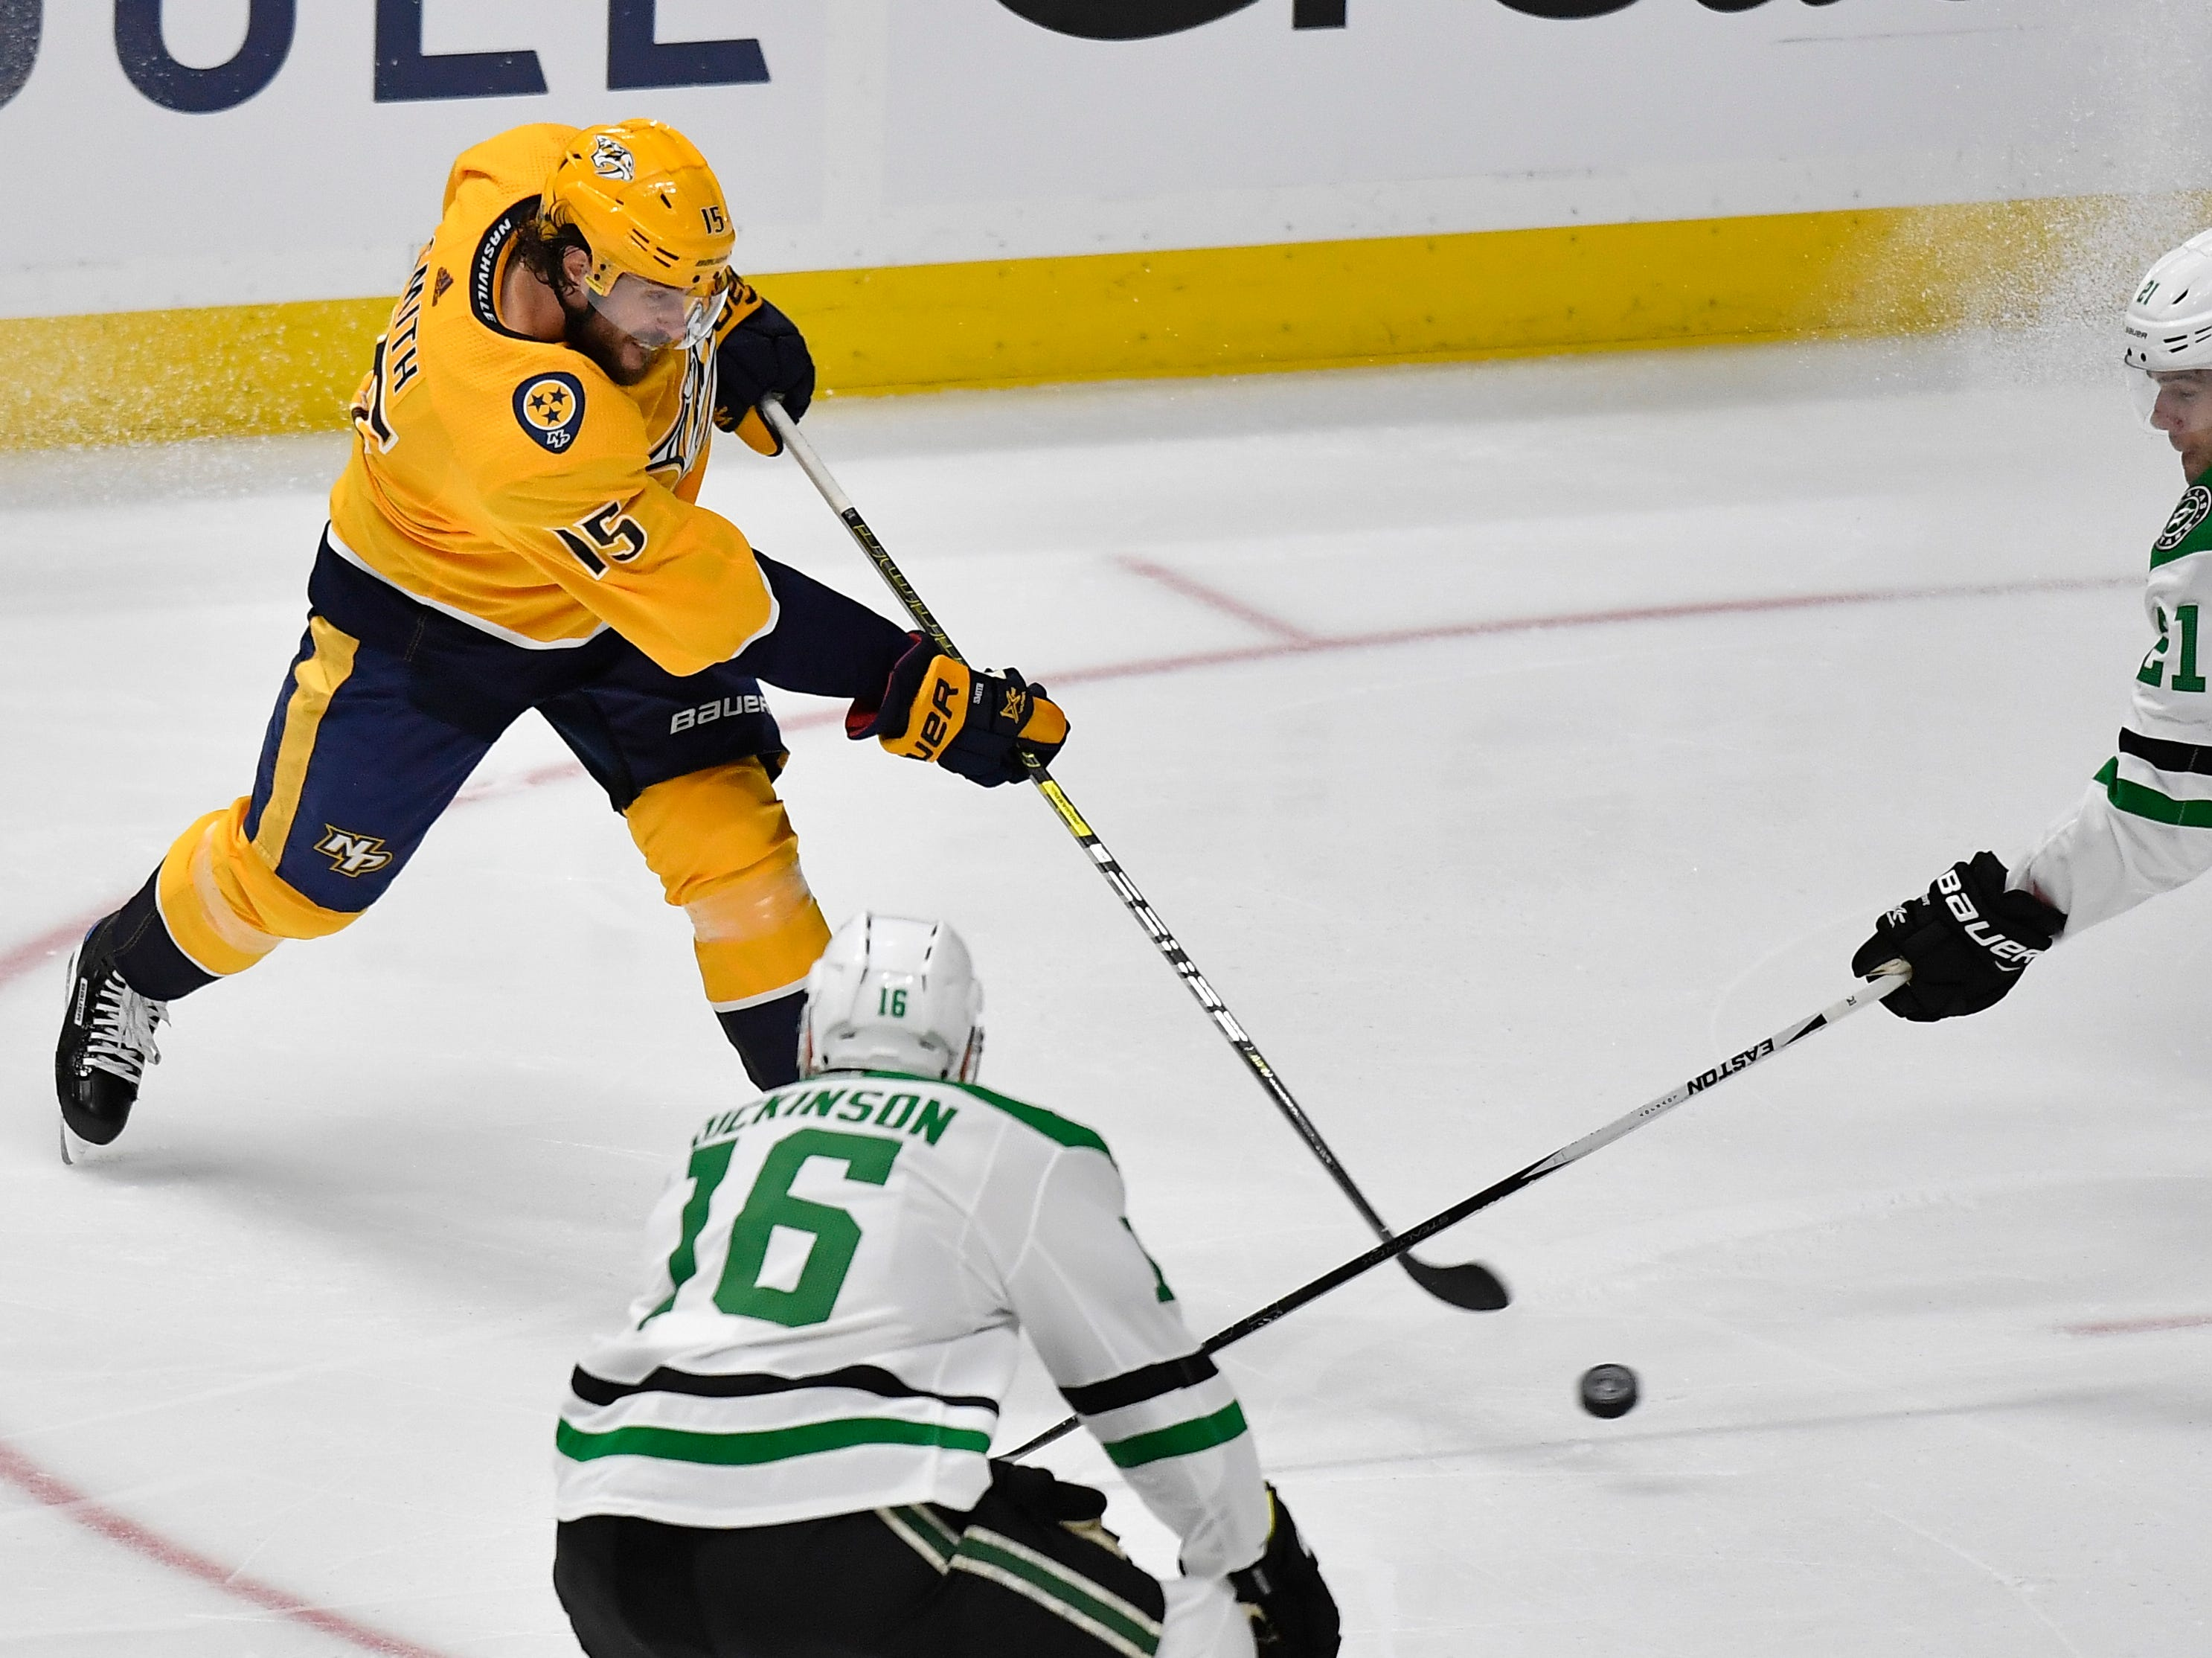 Nashville Predators right wing Craig Smith (15) moves the puck defended by Dallas Stars defenseman Ben Lovejoy (21) during the first period of the divisional semifinal game at Bridgestone Arena in Nashville, Tenn., Wednesday, April 10, 2019.